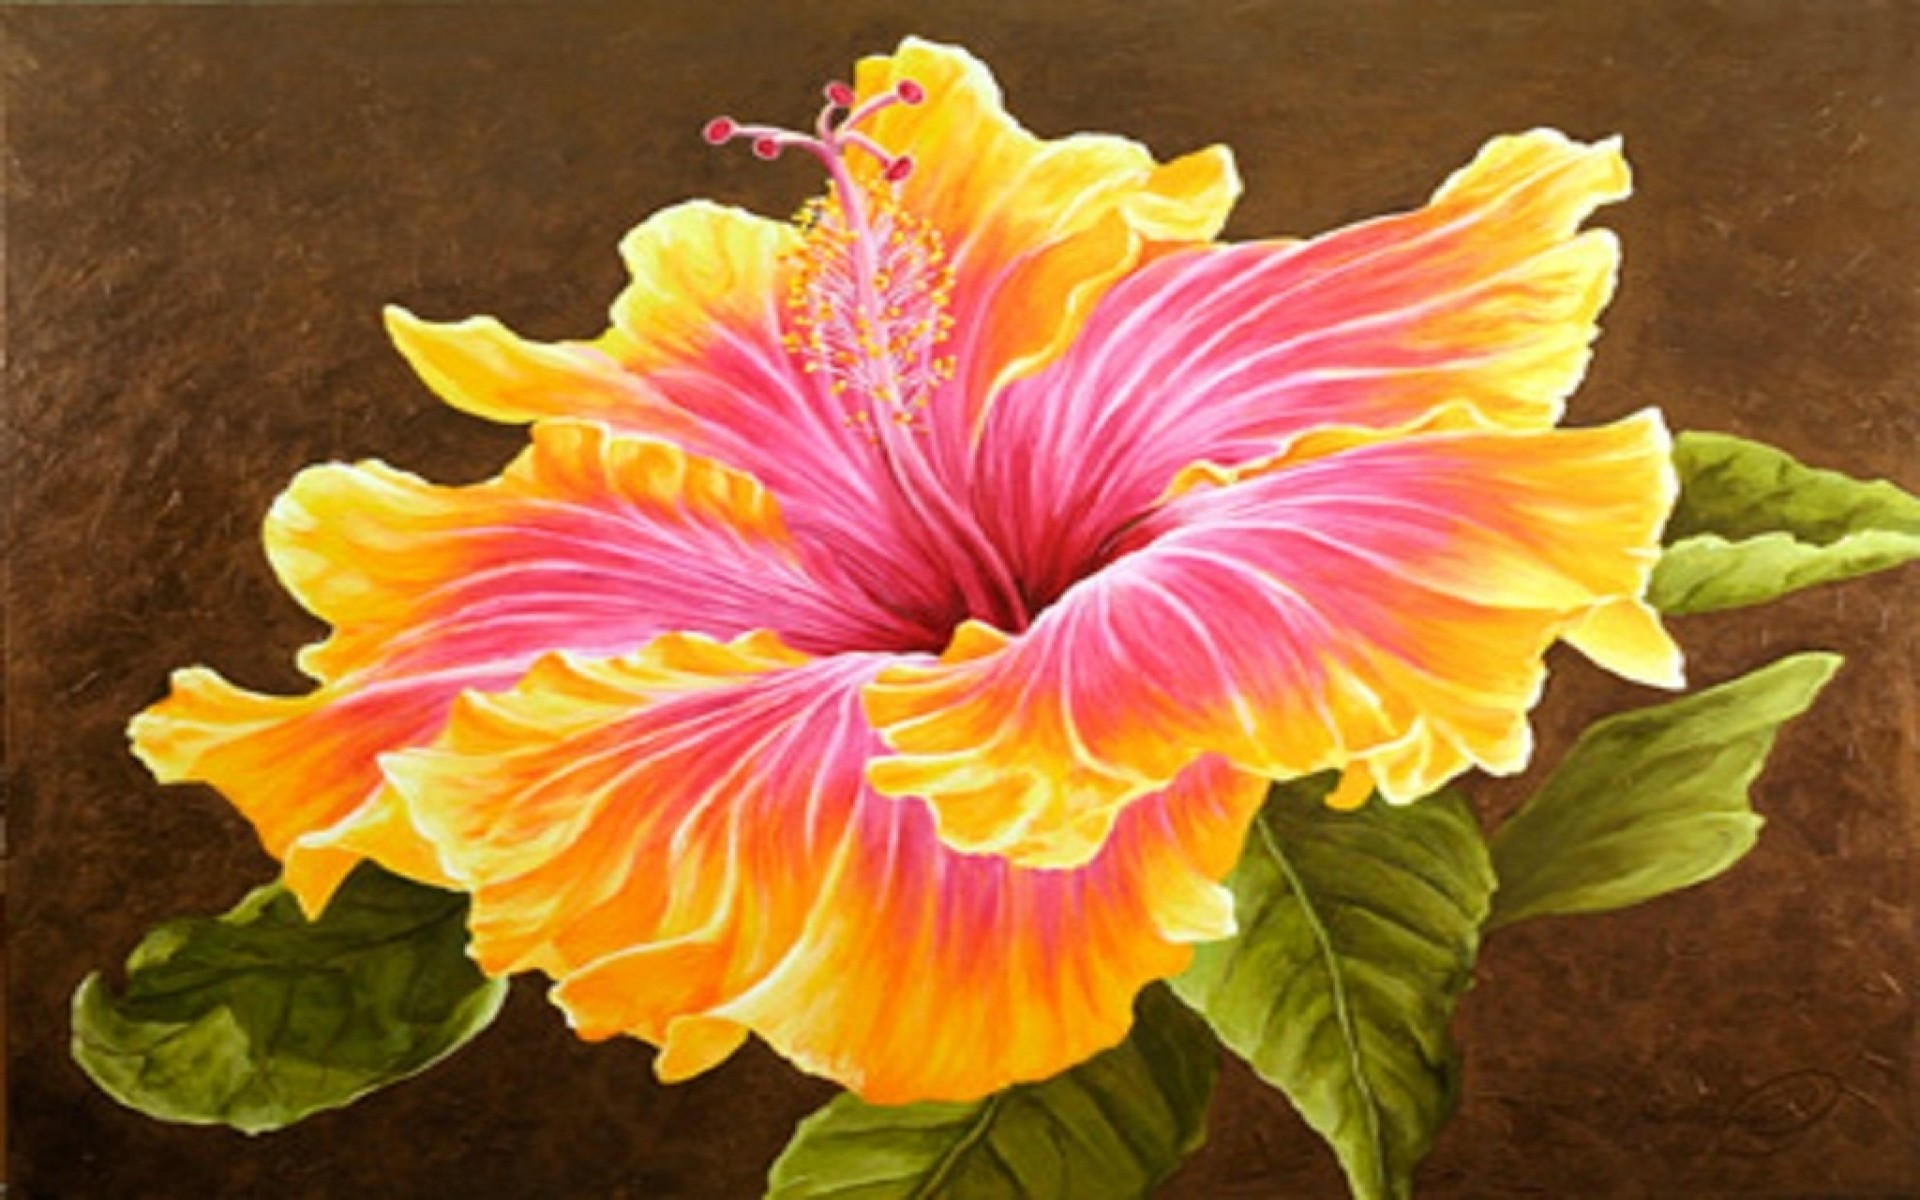 Res: 1920x1200, Image: Beautiful Hibiscus Flower wallpapers and stock photos. Â«